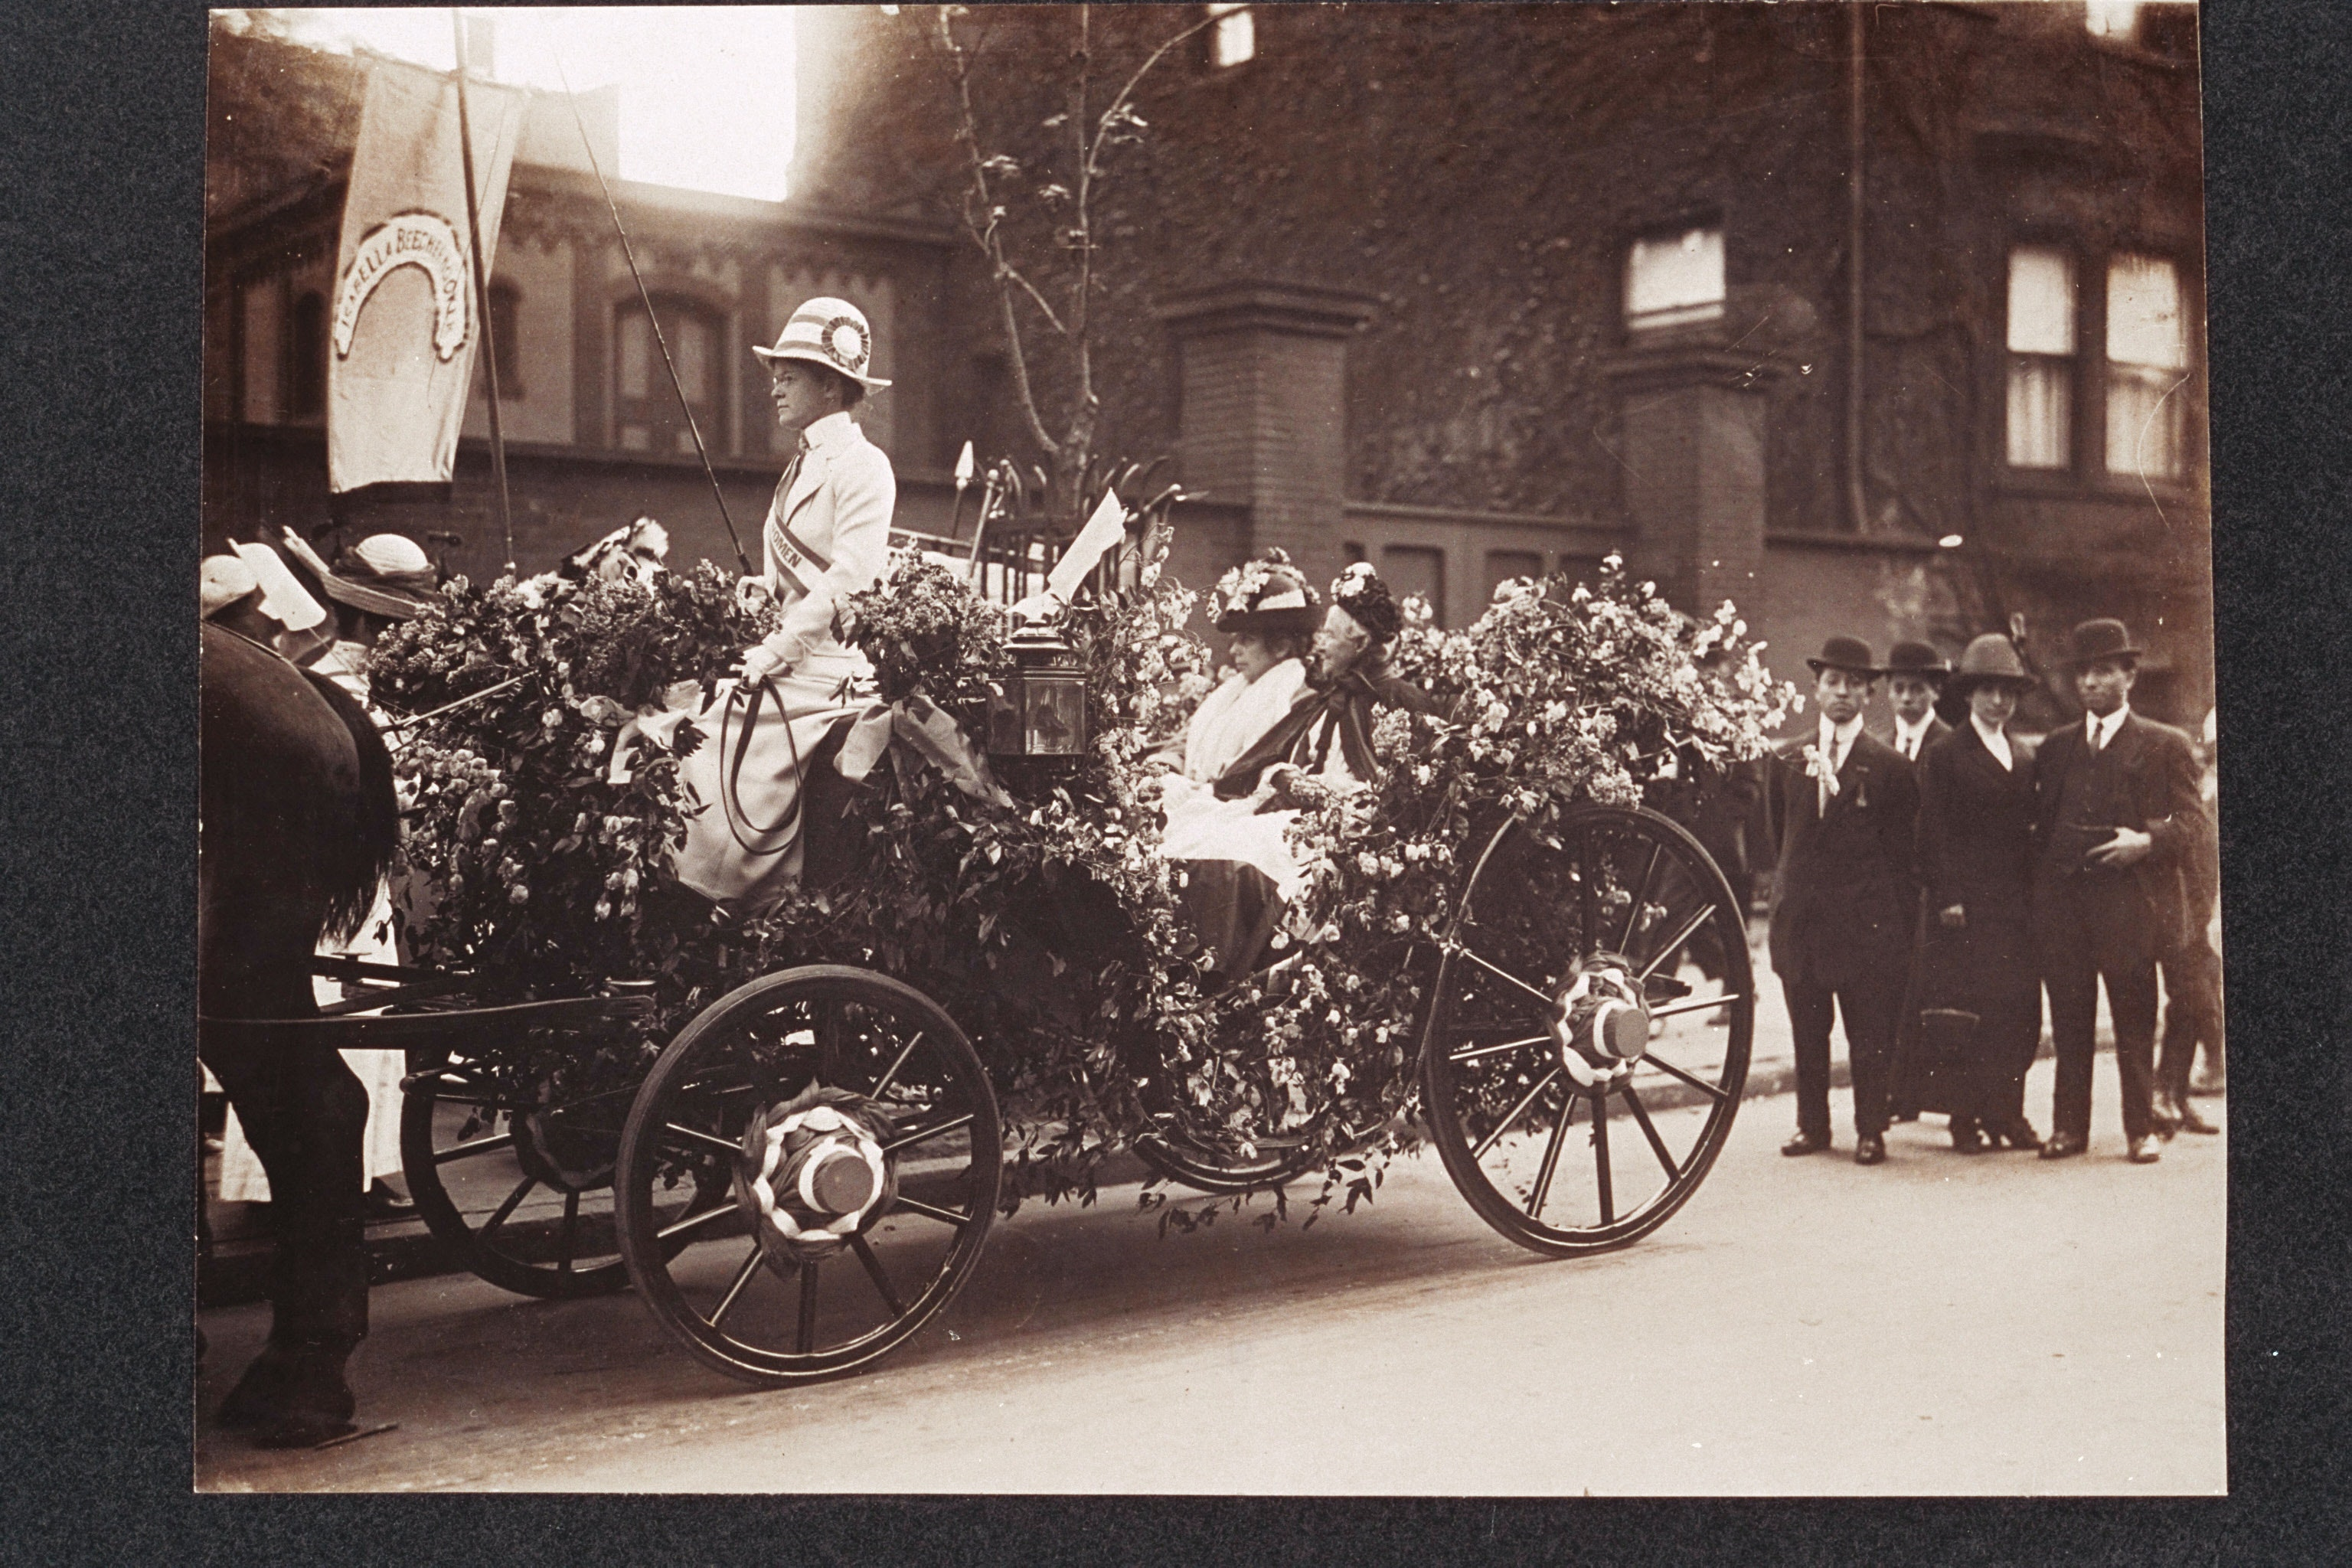 Alice Stone Blackwell and Antoinette Brown Blackwell in a suffrage parade